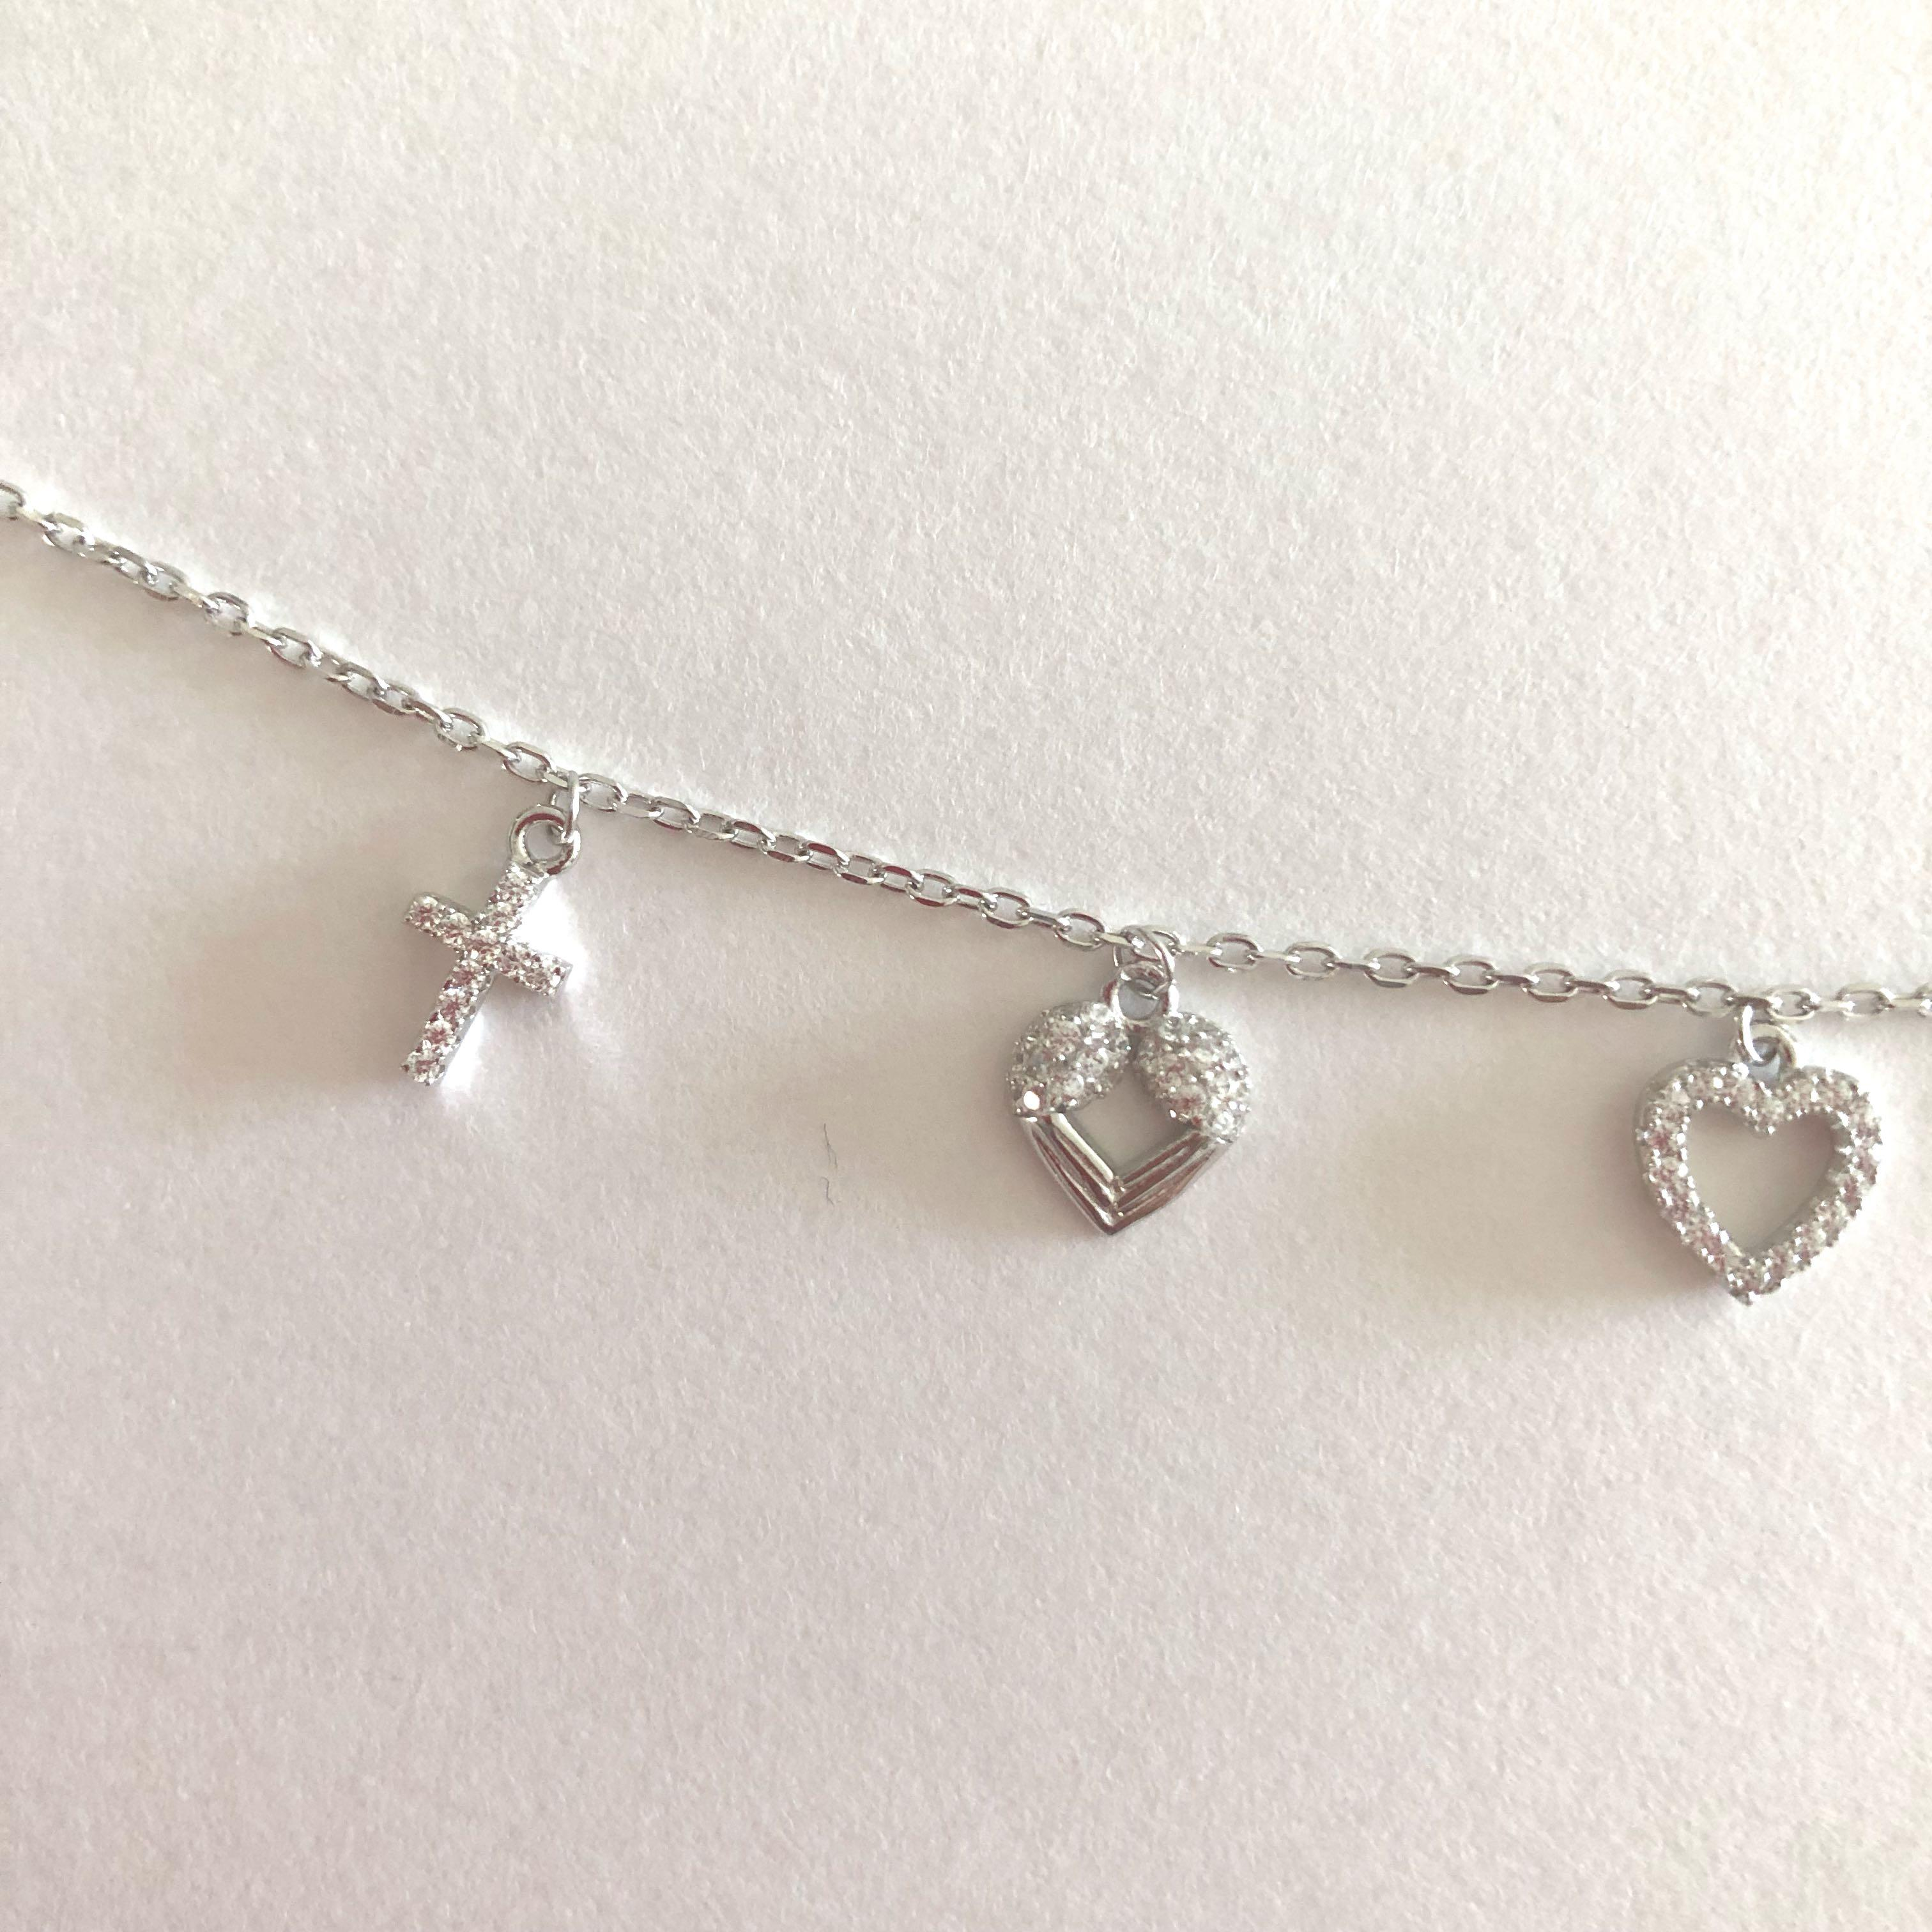 Italian Bracelet with cross and heart charms